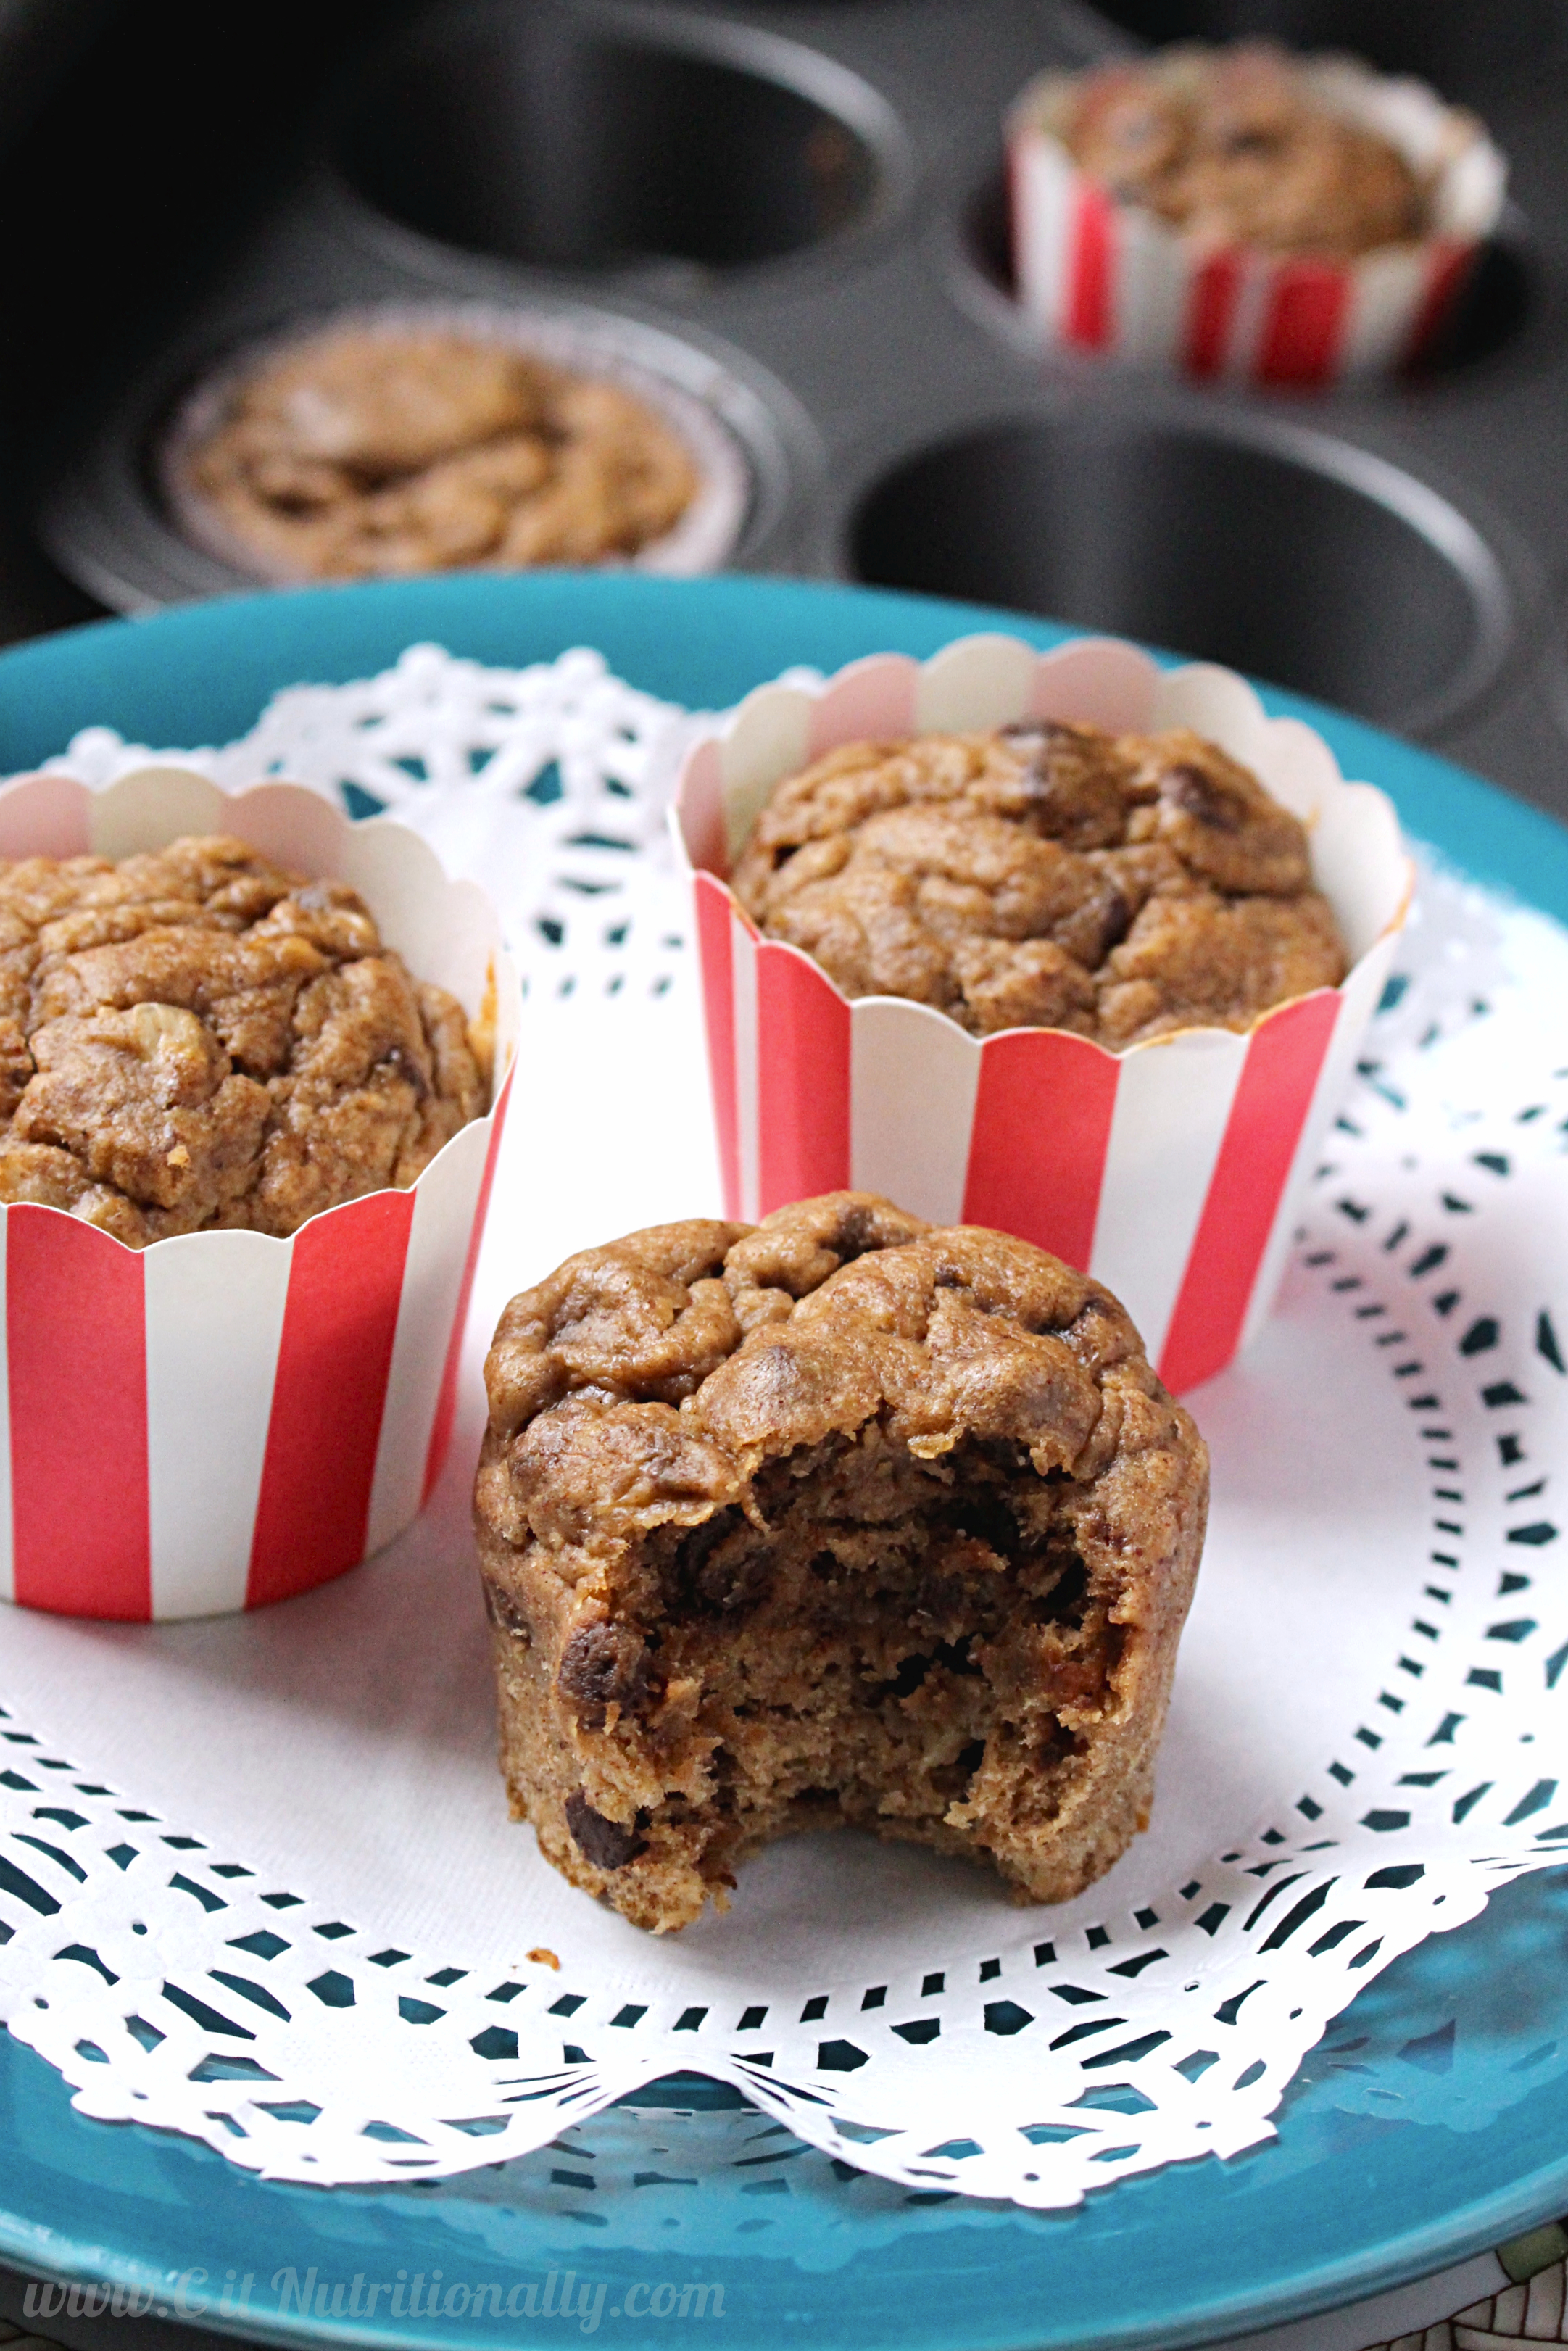 vegan banana bread muffins with no added sugar c it nutritionally. Black Bedroom Furniture Sets. Home Design Ideas